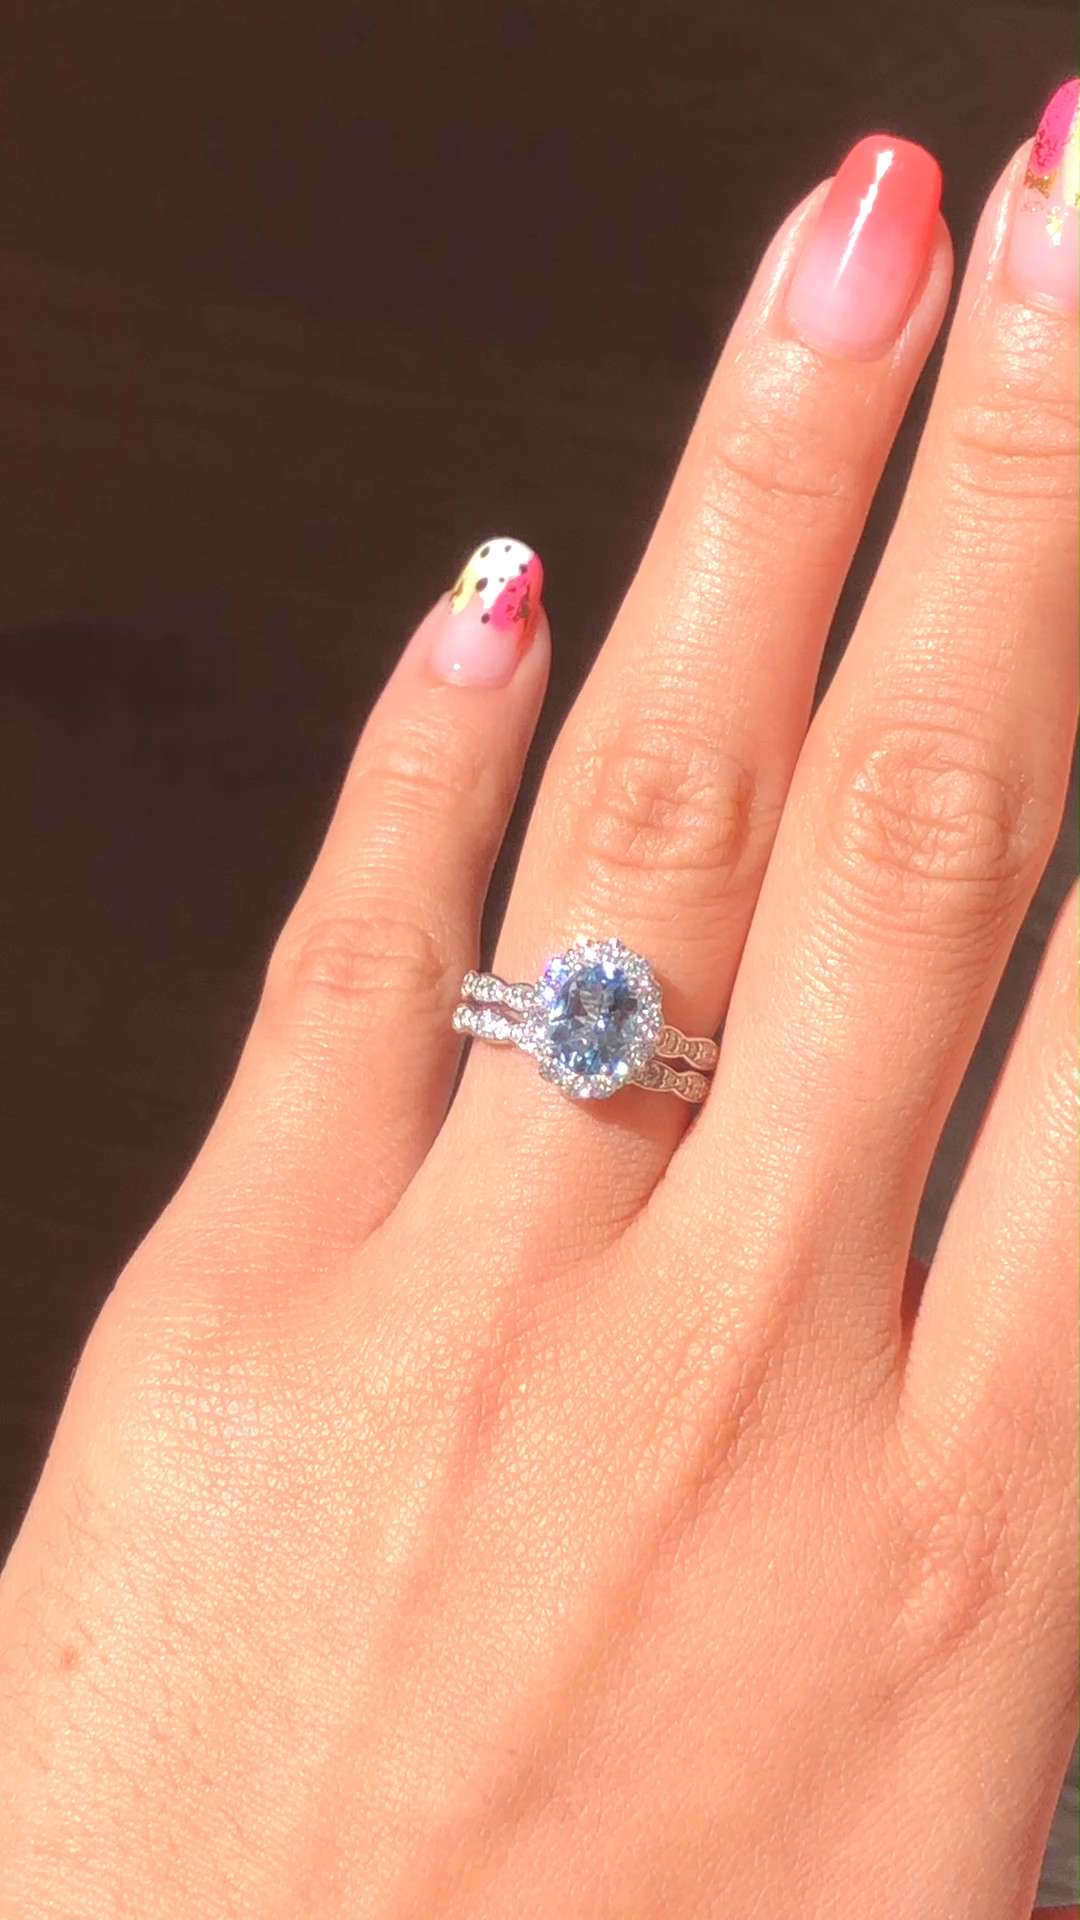 Aquamarine in White Gold Bridal Ring Set by La More Design  Looking for something blue? Look no fur